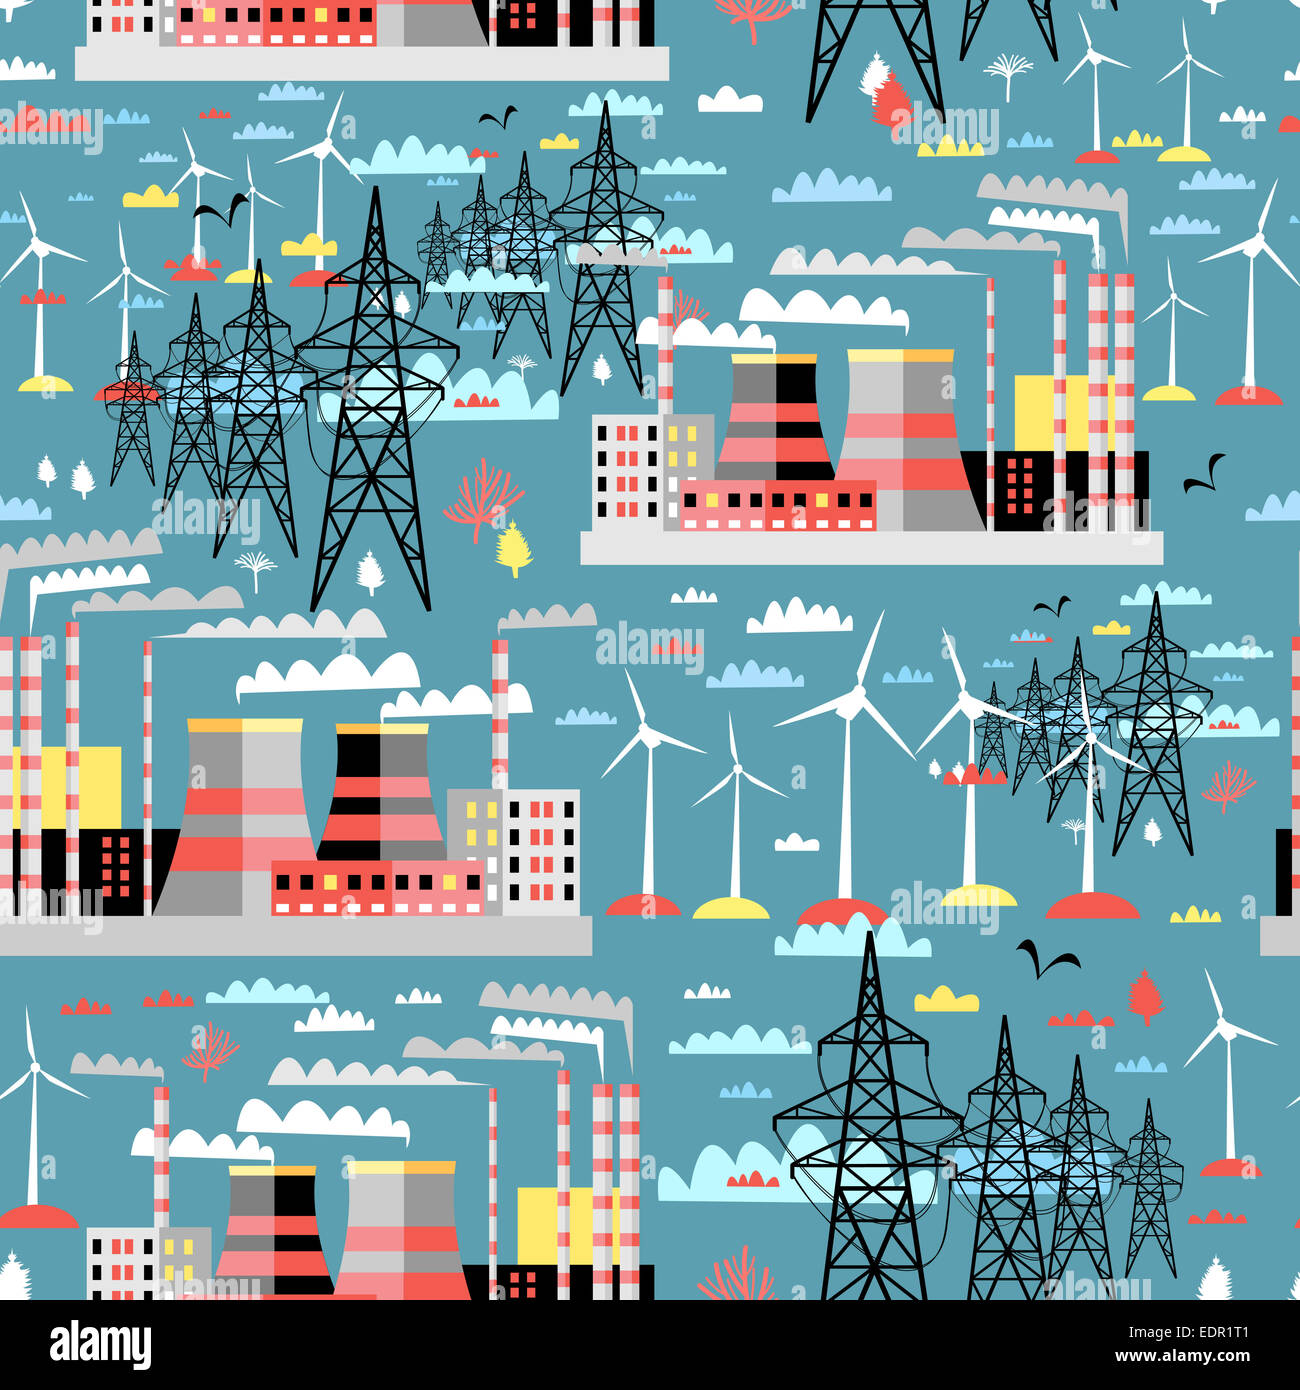 Power Plant Diagram Images Steam Stock Photos Graphic Color Pattern Of Thermal And Wind Plants Lines On A Blue Background